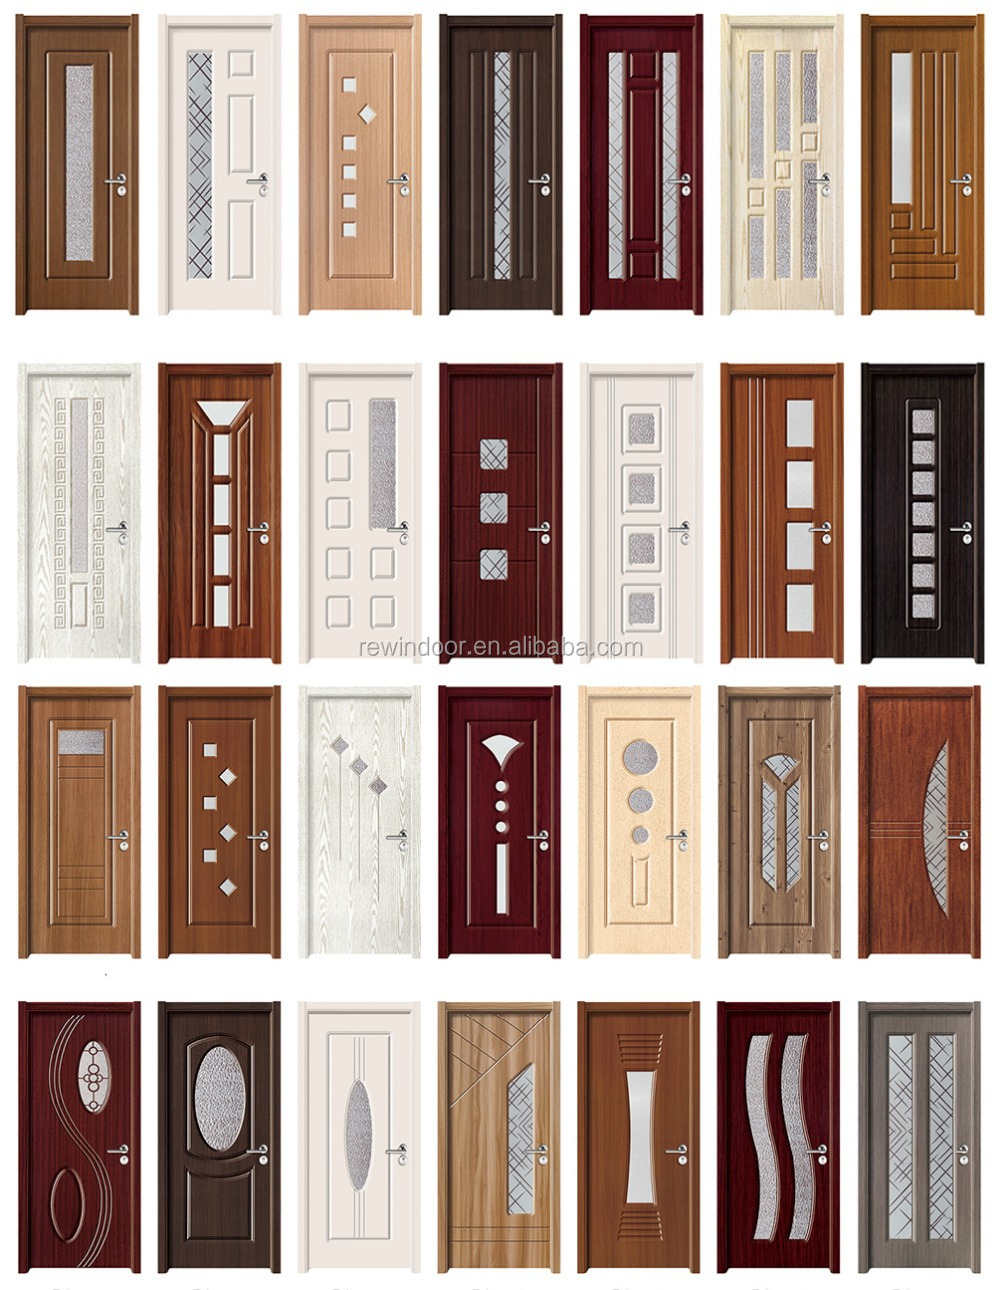 cheap wholesale pvc bedroom wood door buy pvc bedroom wood door yaju